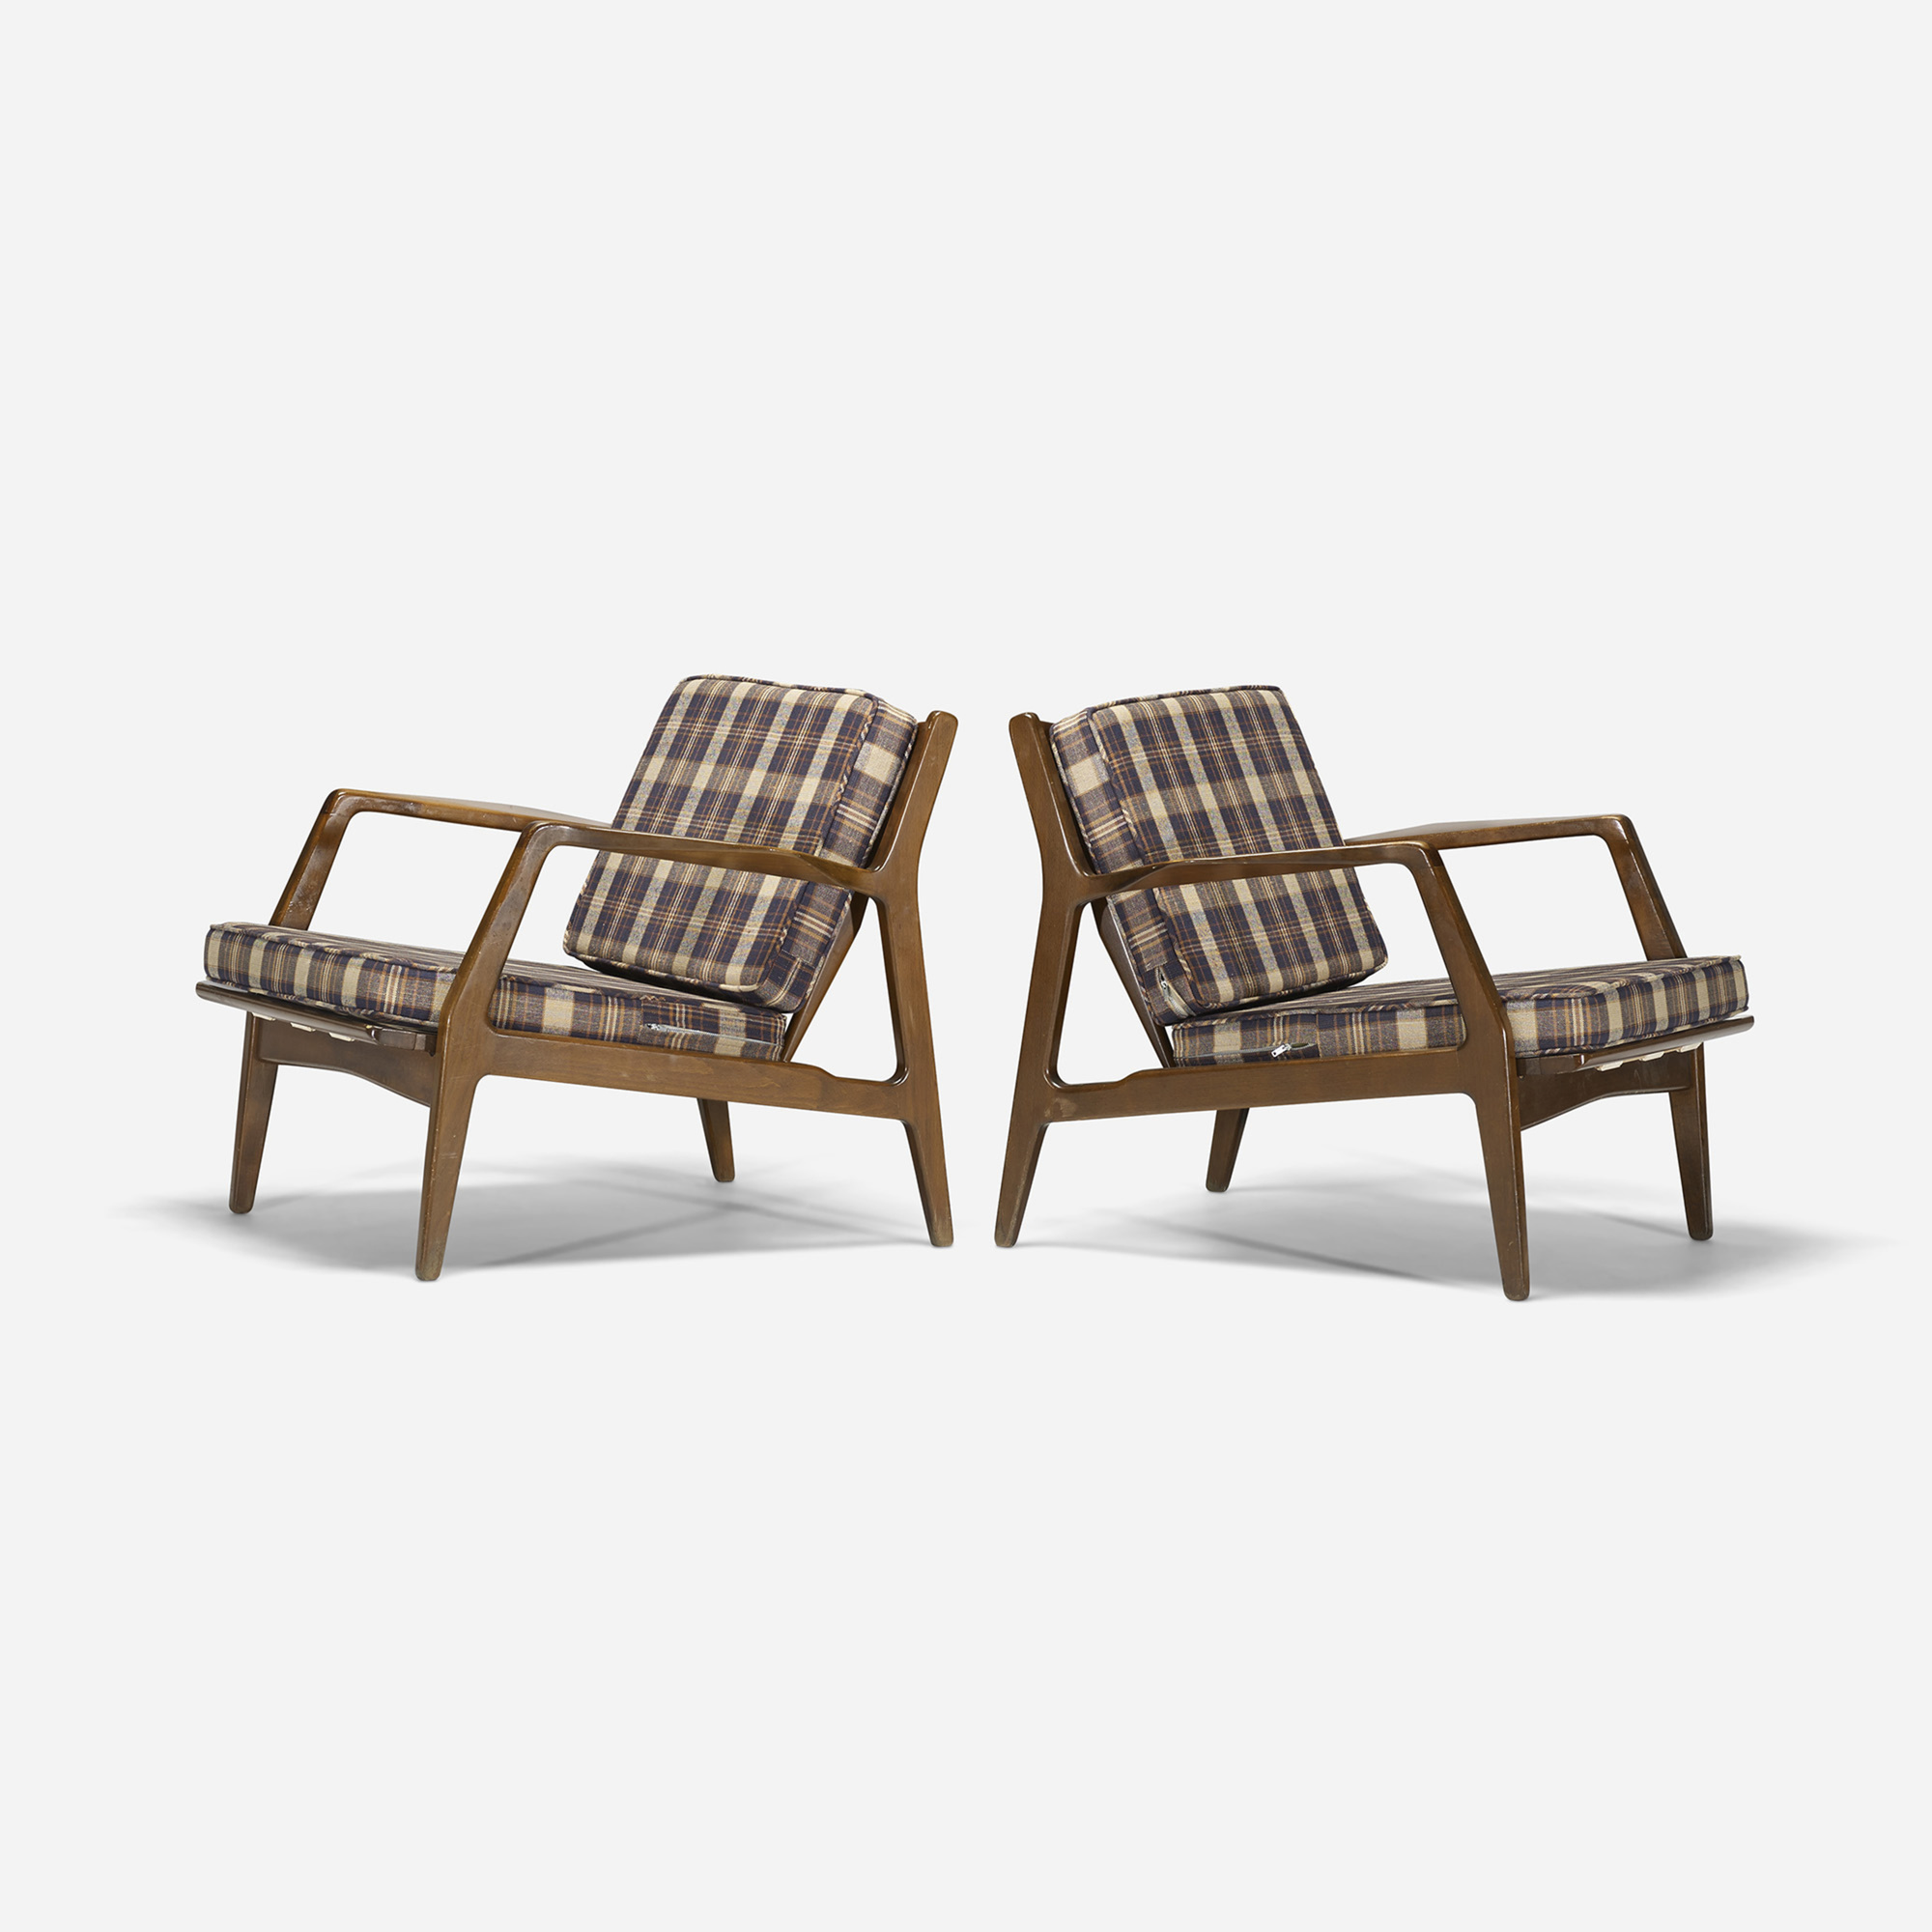 248: Dux / lounge chairs, pair (3 of 4)